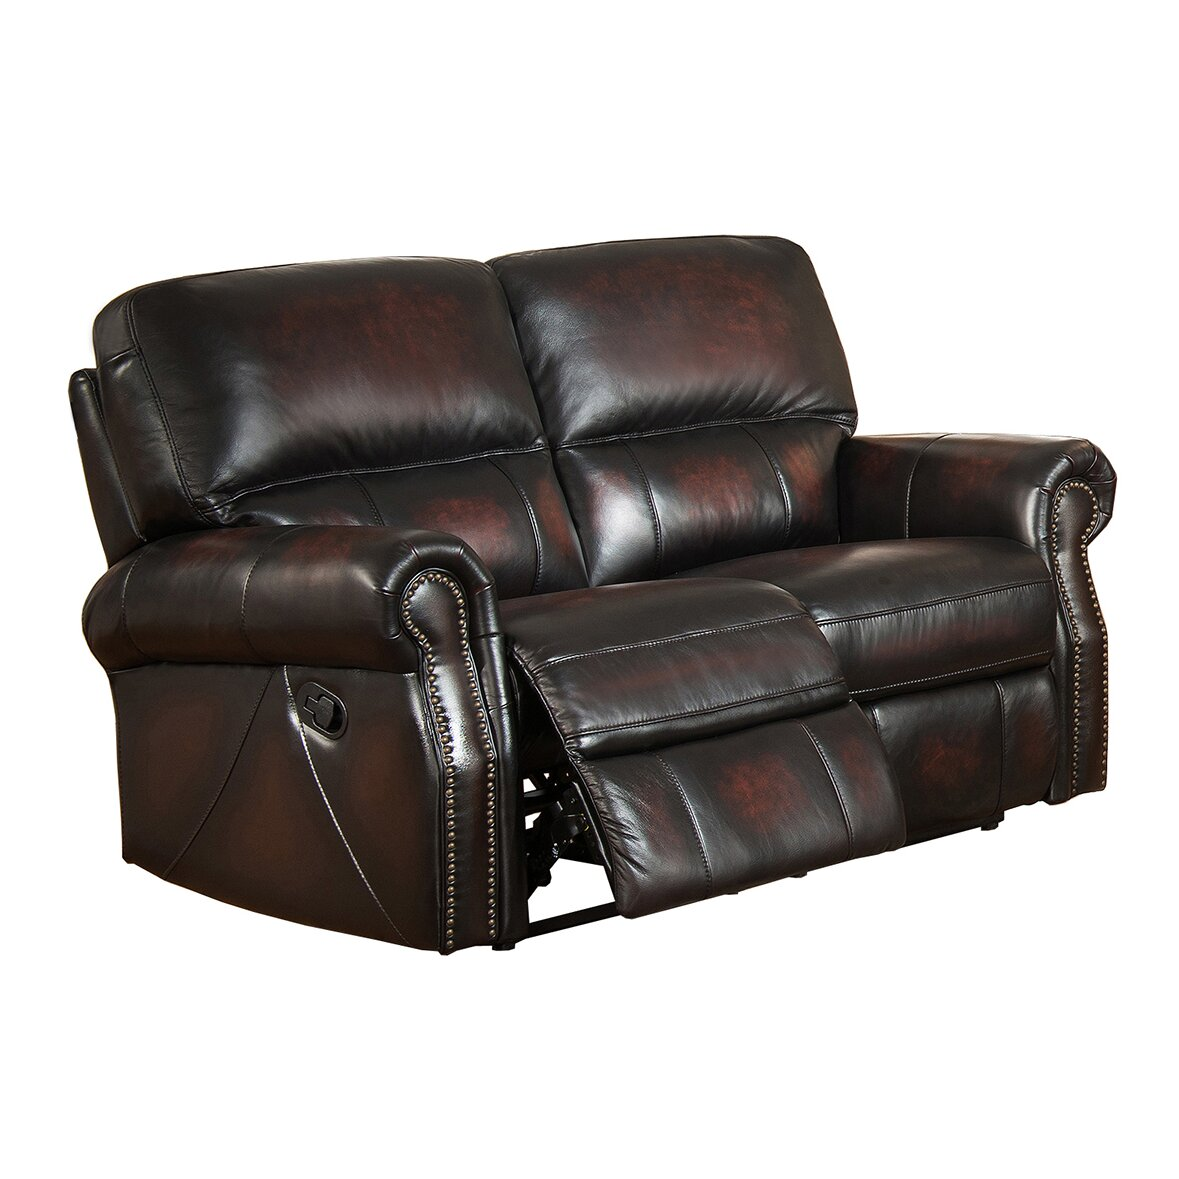 Amax nevada leather recliner sofa and loveseat set wayfair Leather loveseat recliners